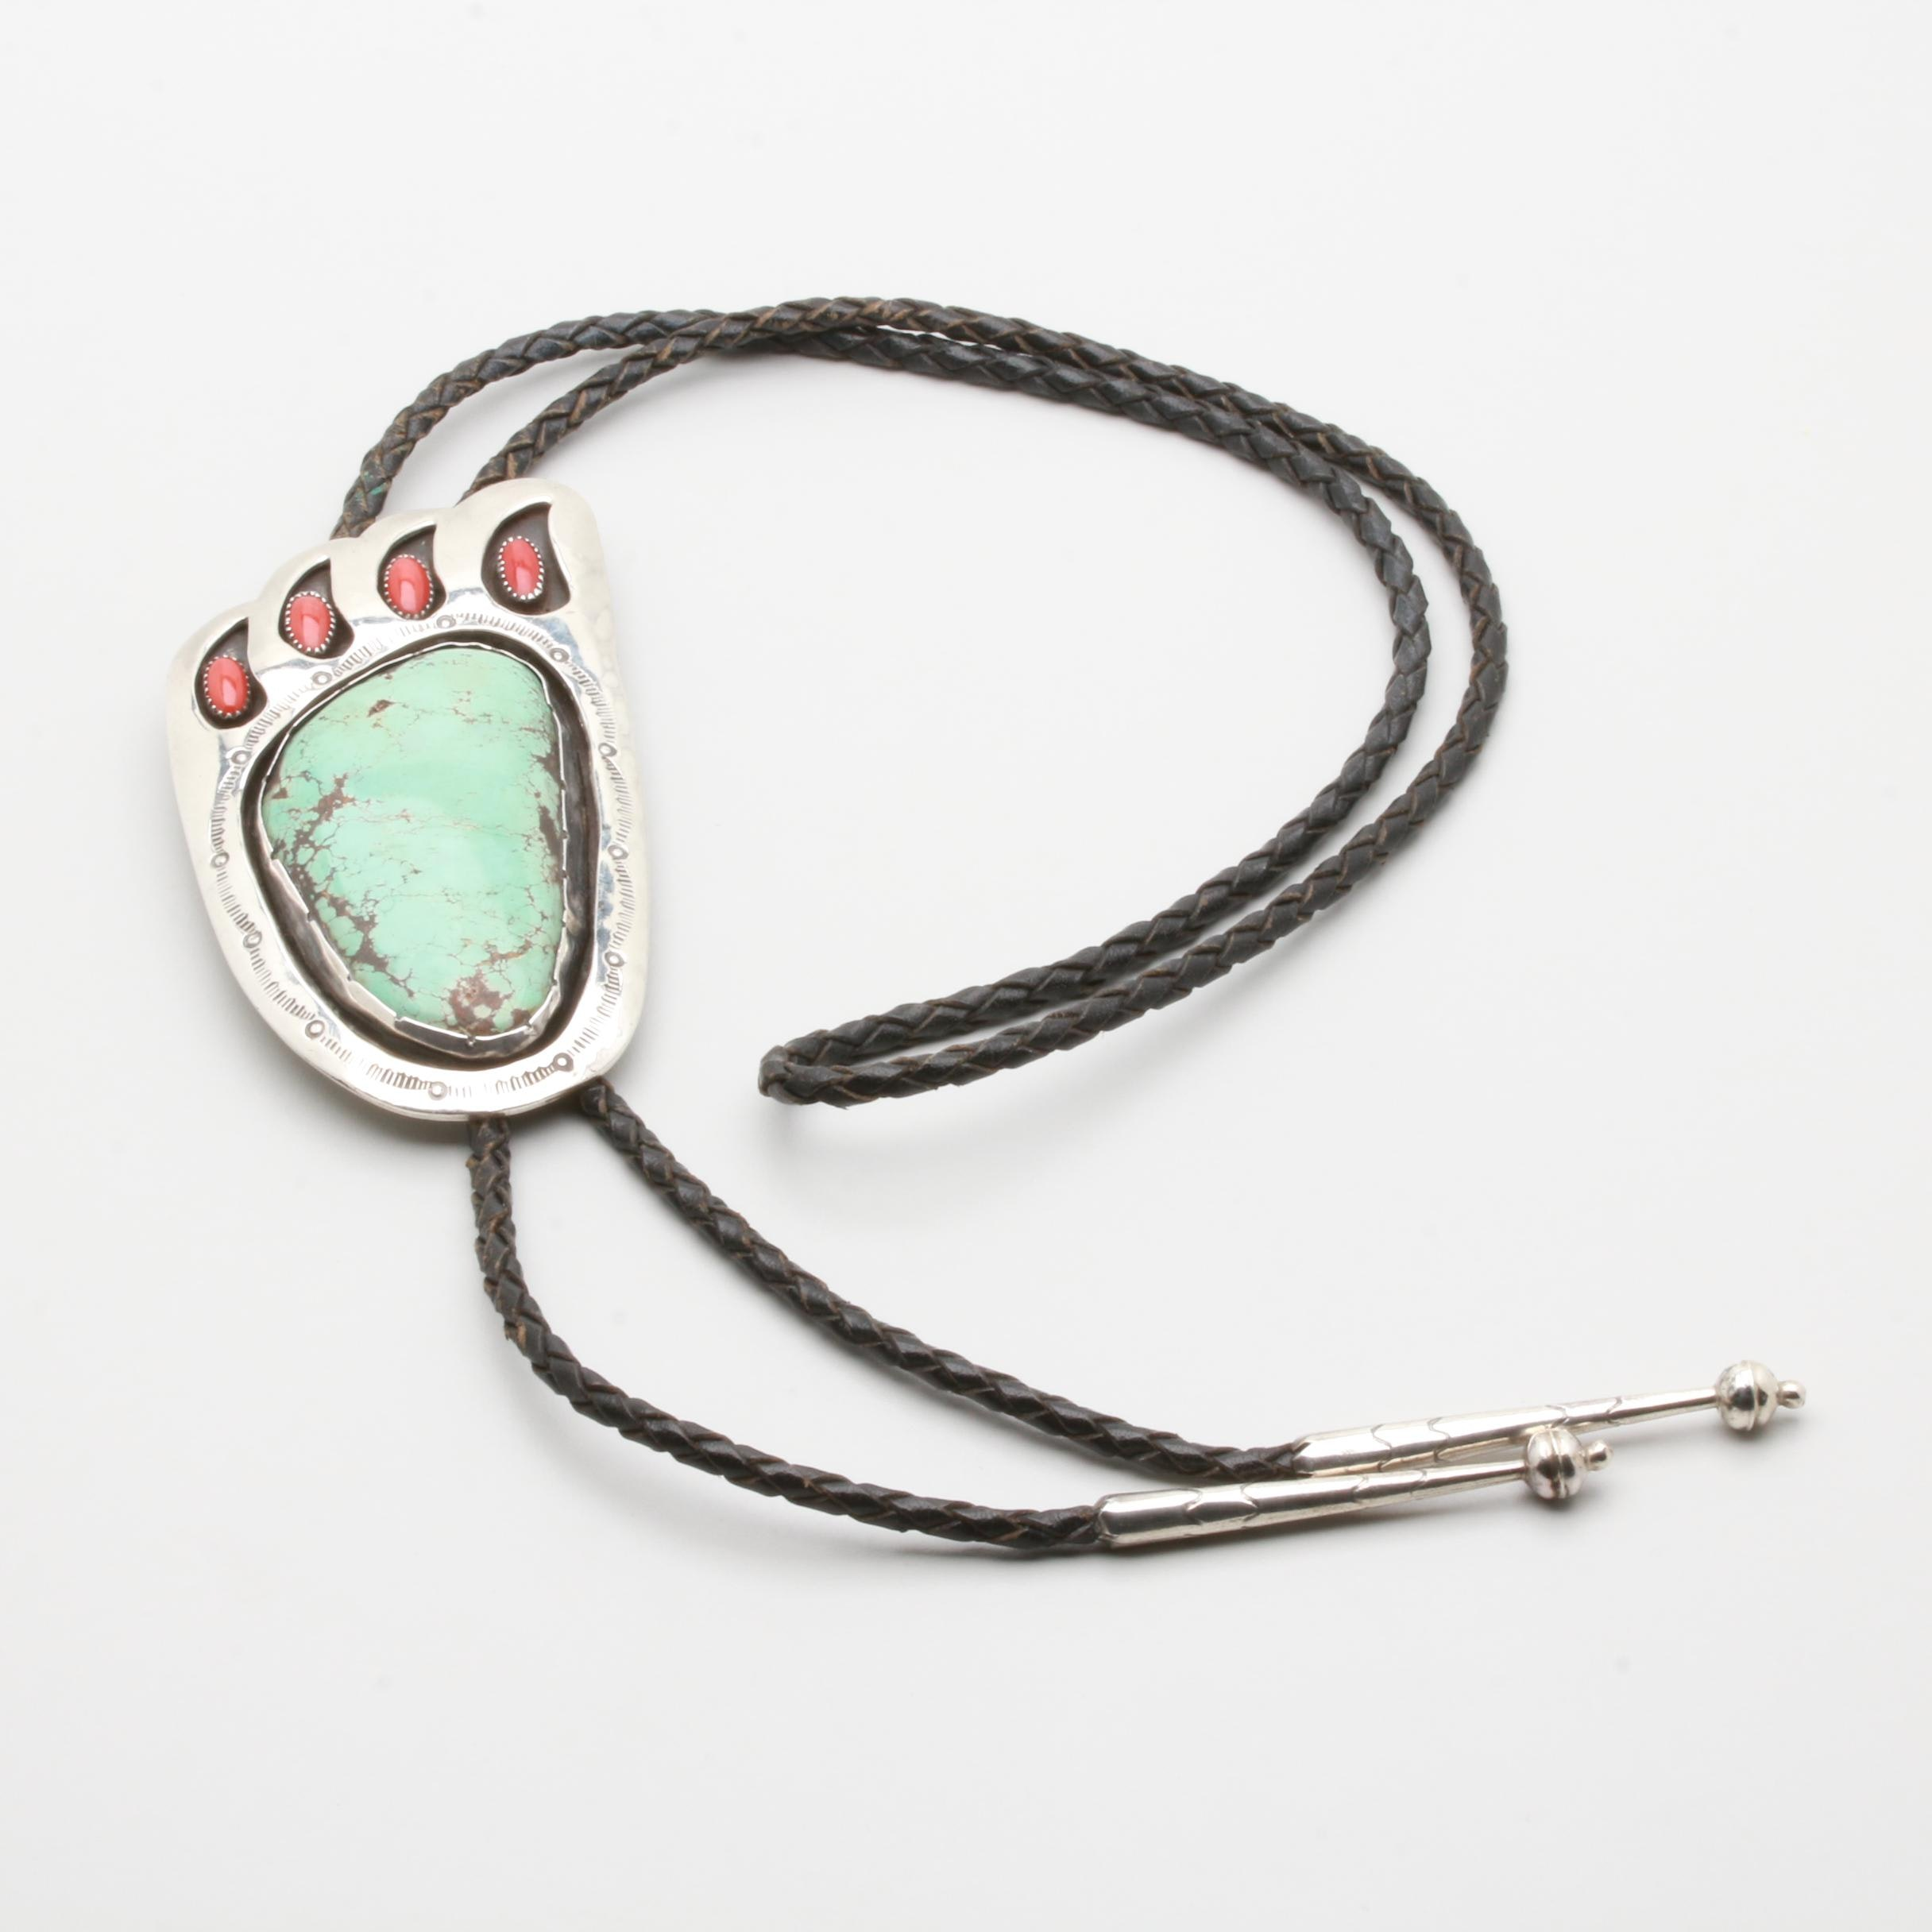 Kenny Jack Sterling Silver Turquoise and Coral Bear Paw Shadow Box Bolo Tie